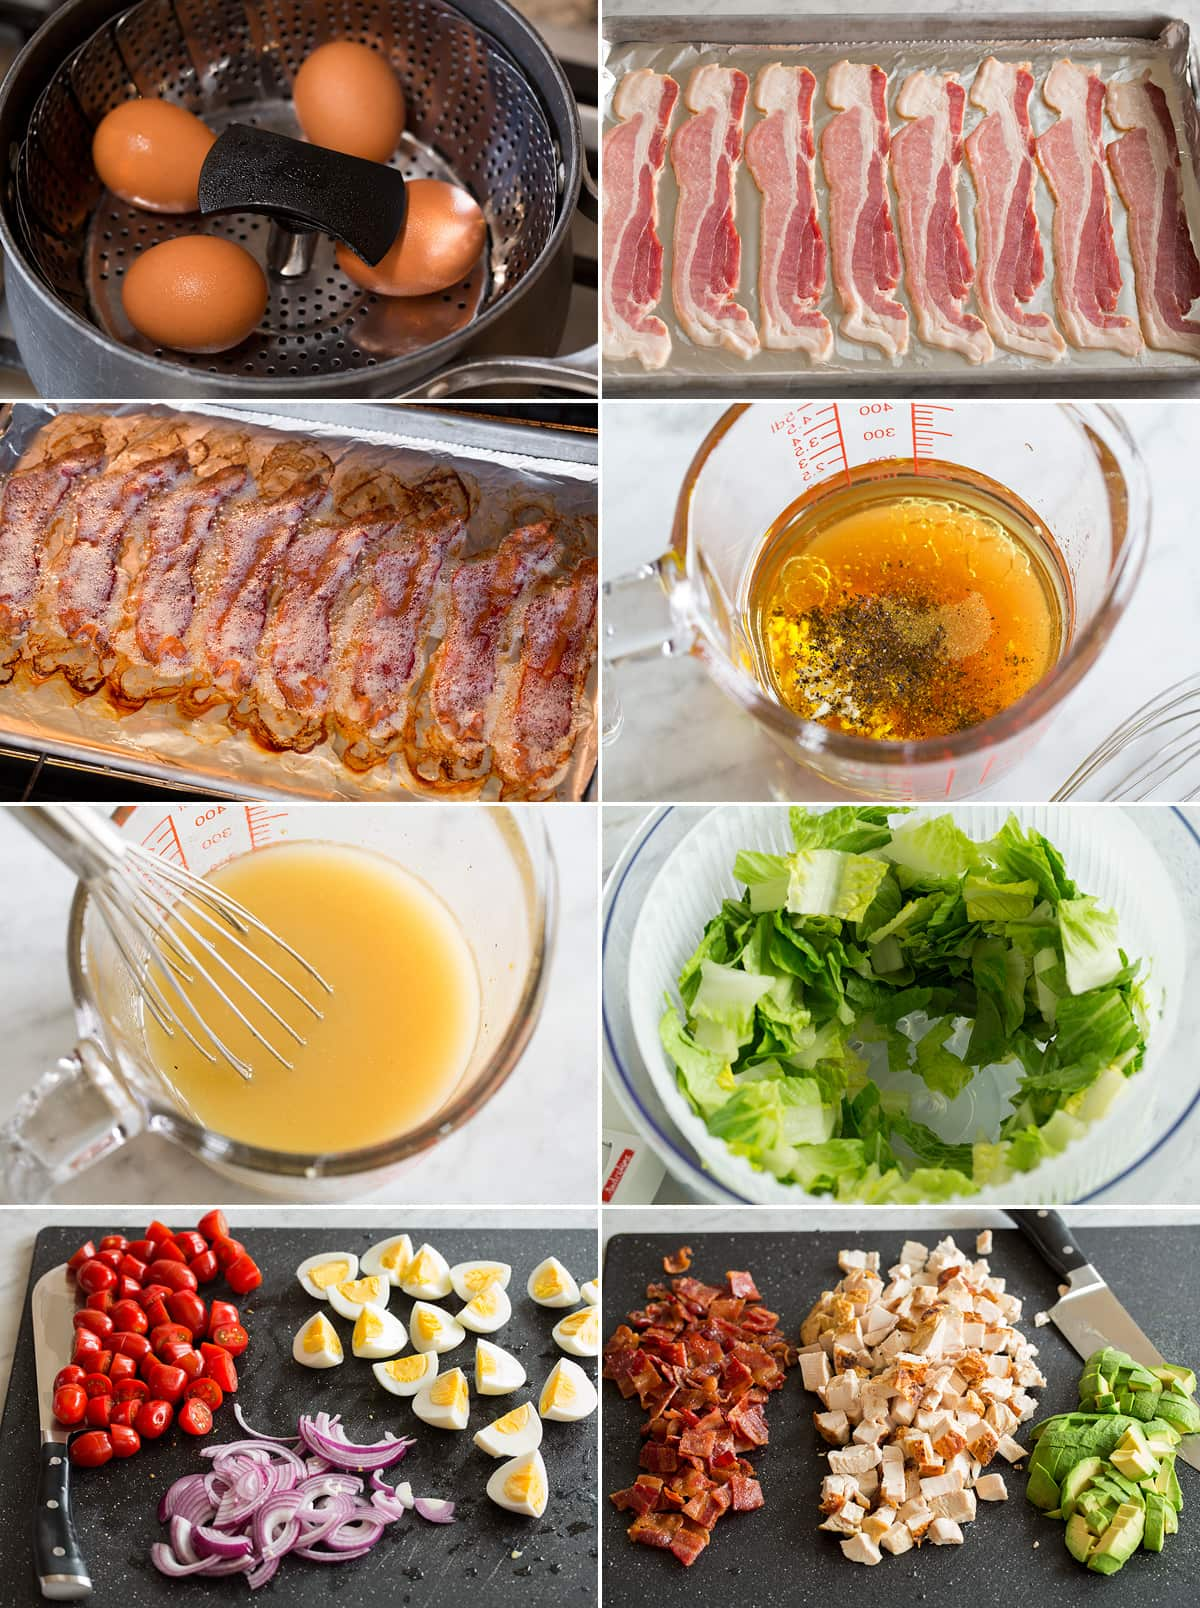 Collage of eight images showing how to cook eggs and bacon for cobb salad. Also shows making dressing and chopping salad ingredients.